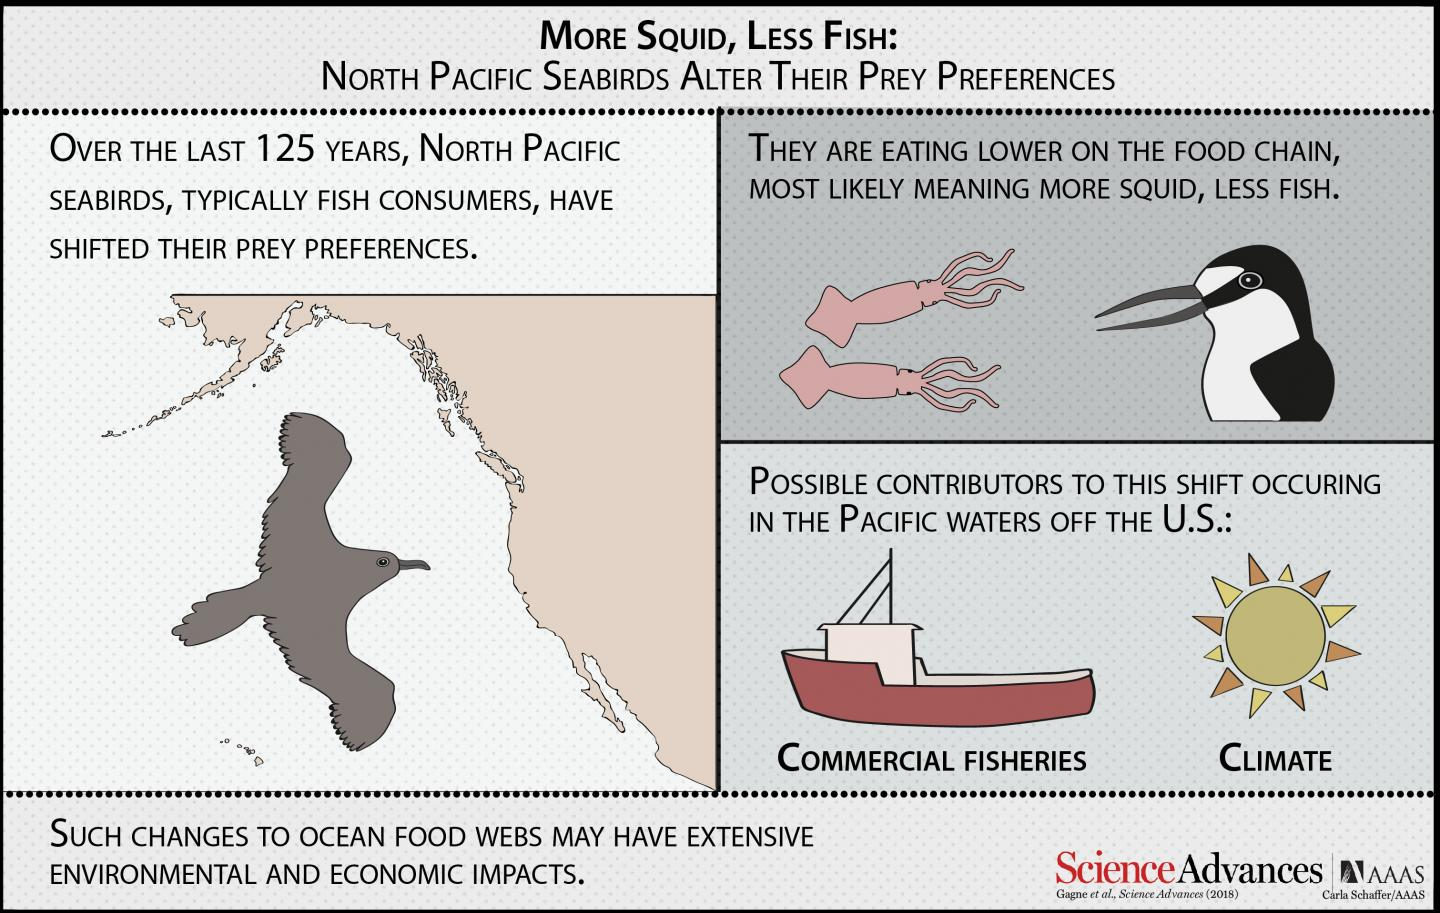 More Squid, Less Fish: North Pacific Seabirds Alter their Prey Preferences